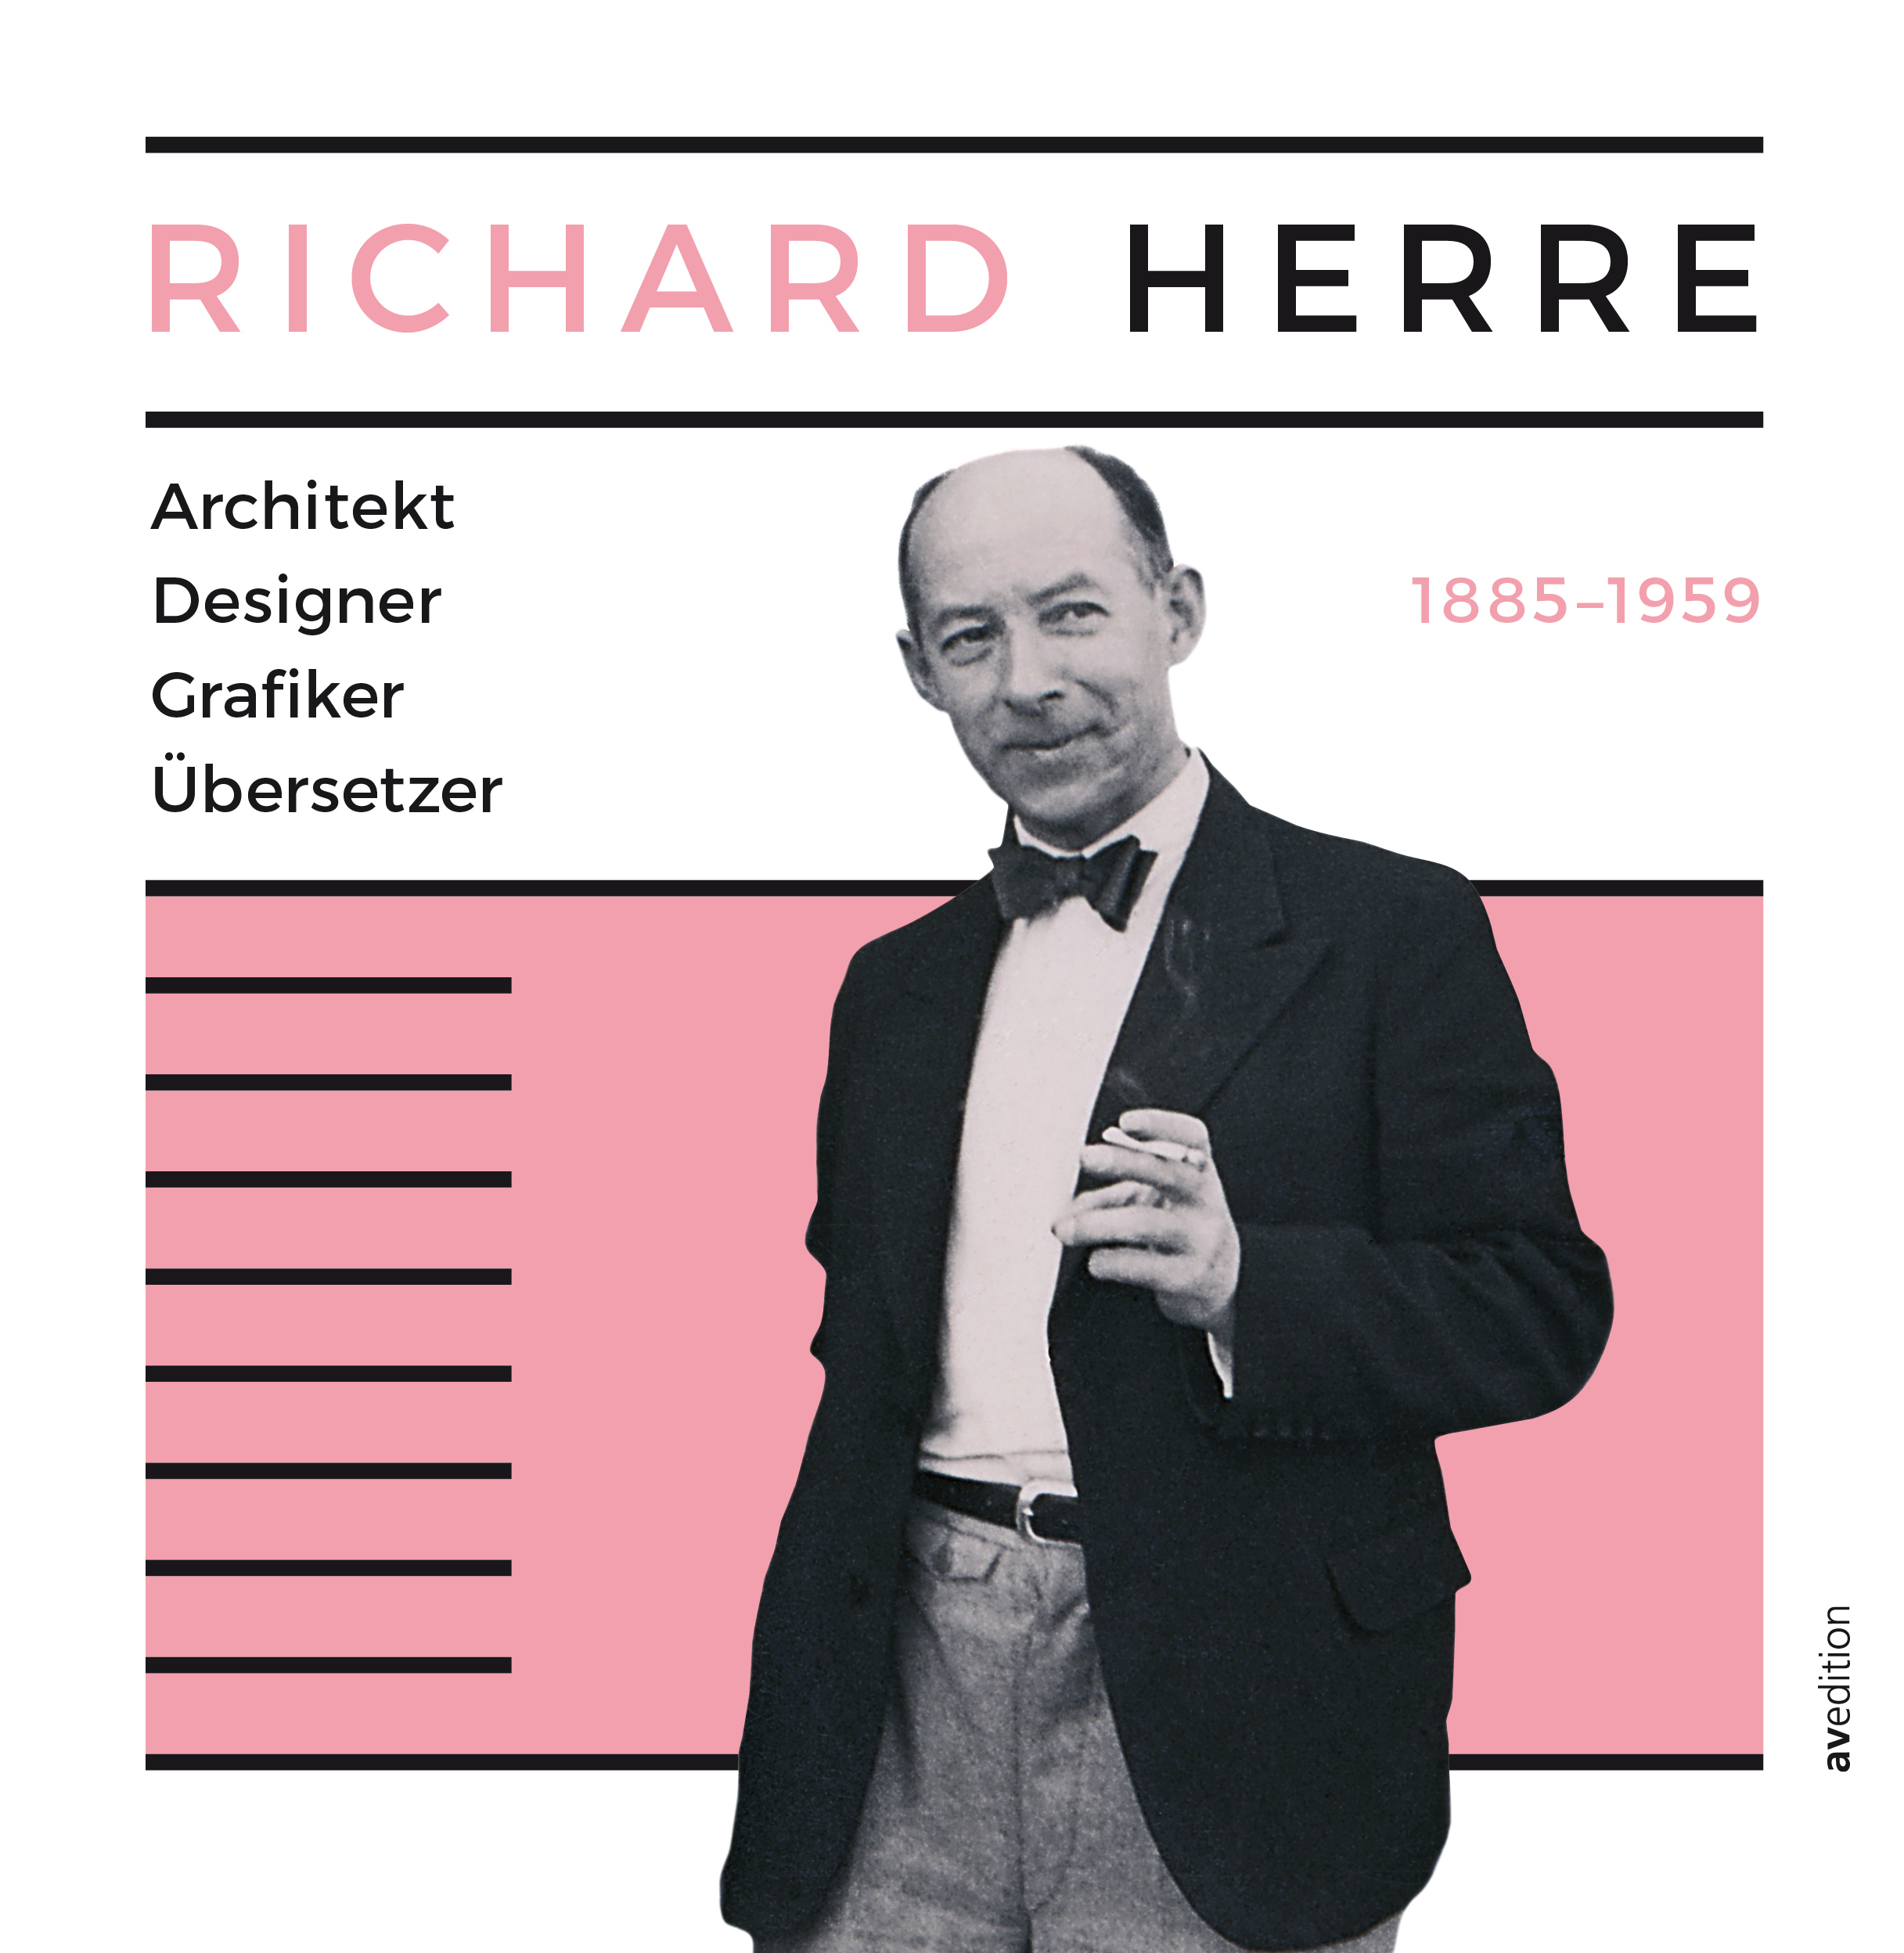 Richard Herre